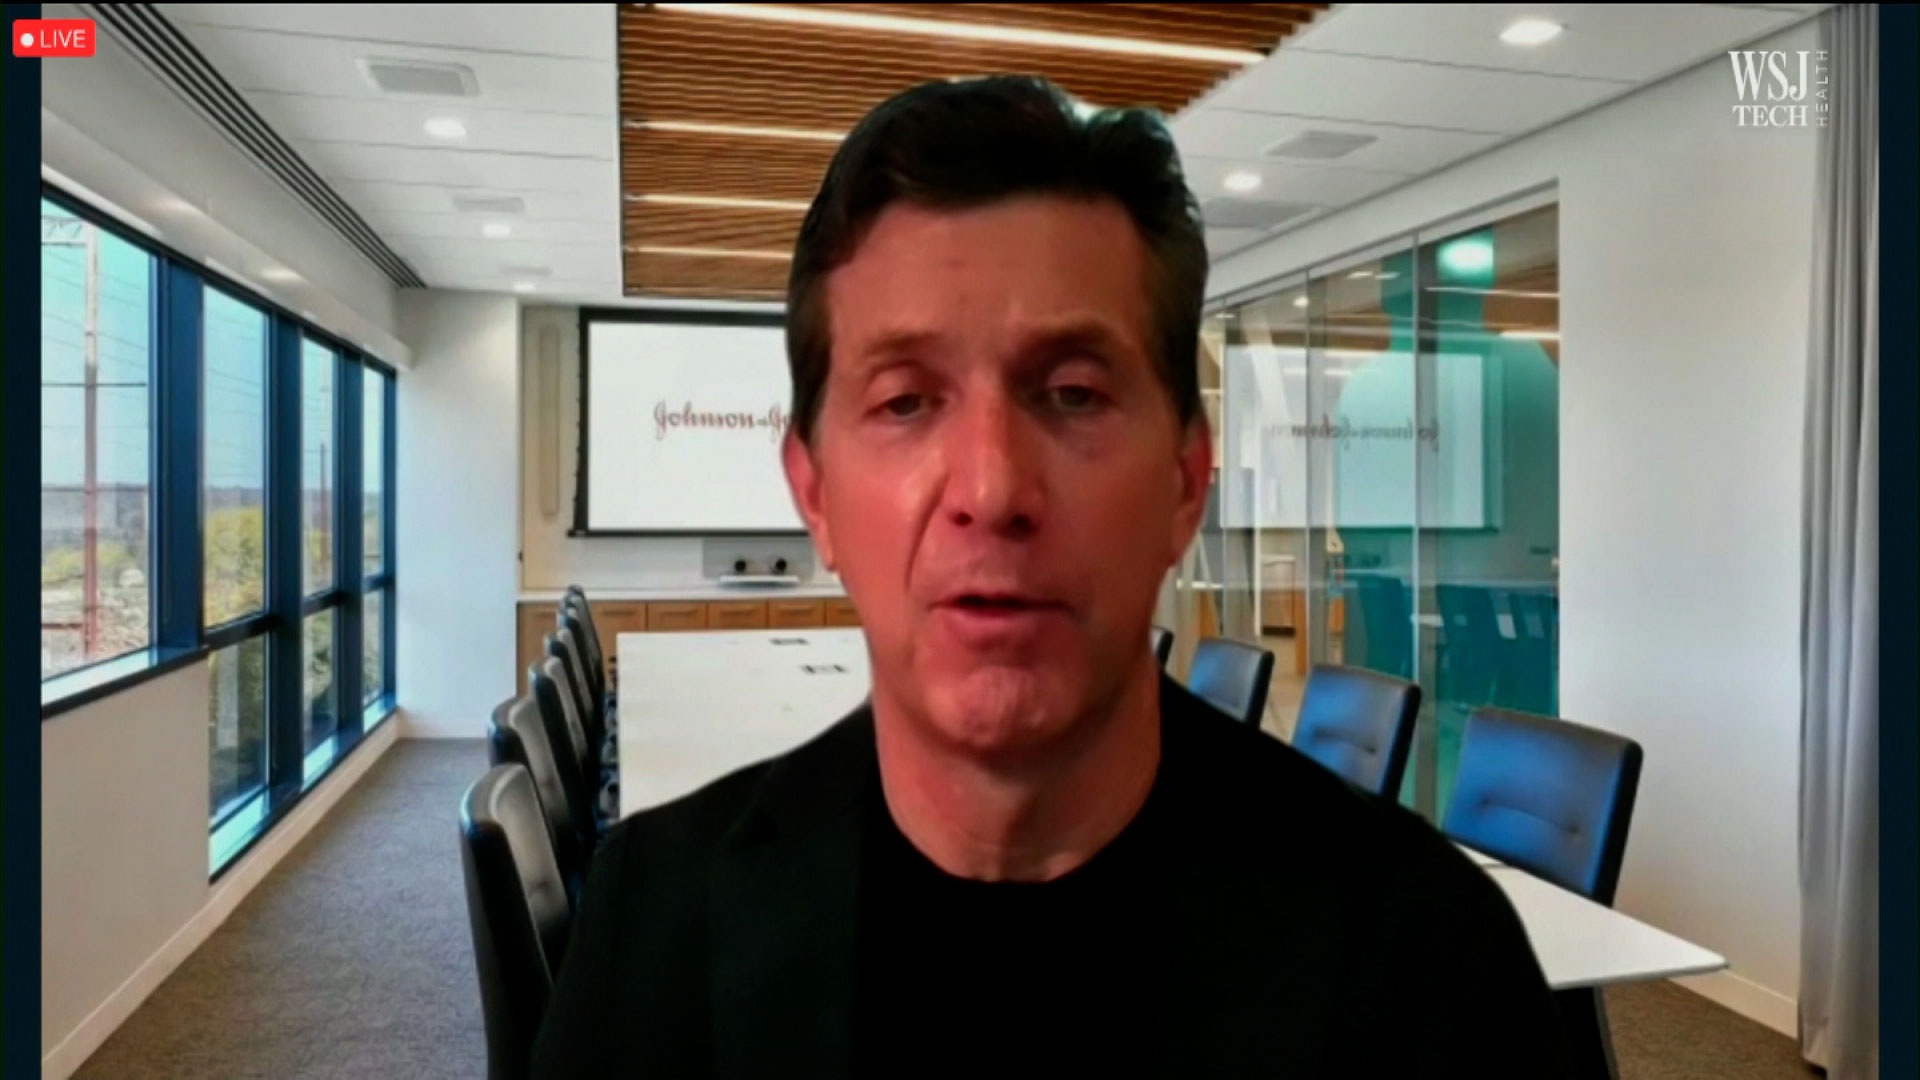 Alex Gorsky, chairman and CEO of Johnson & Johnson, on June 9.